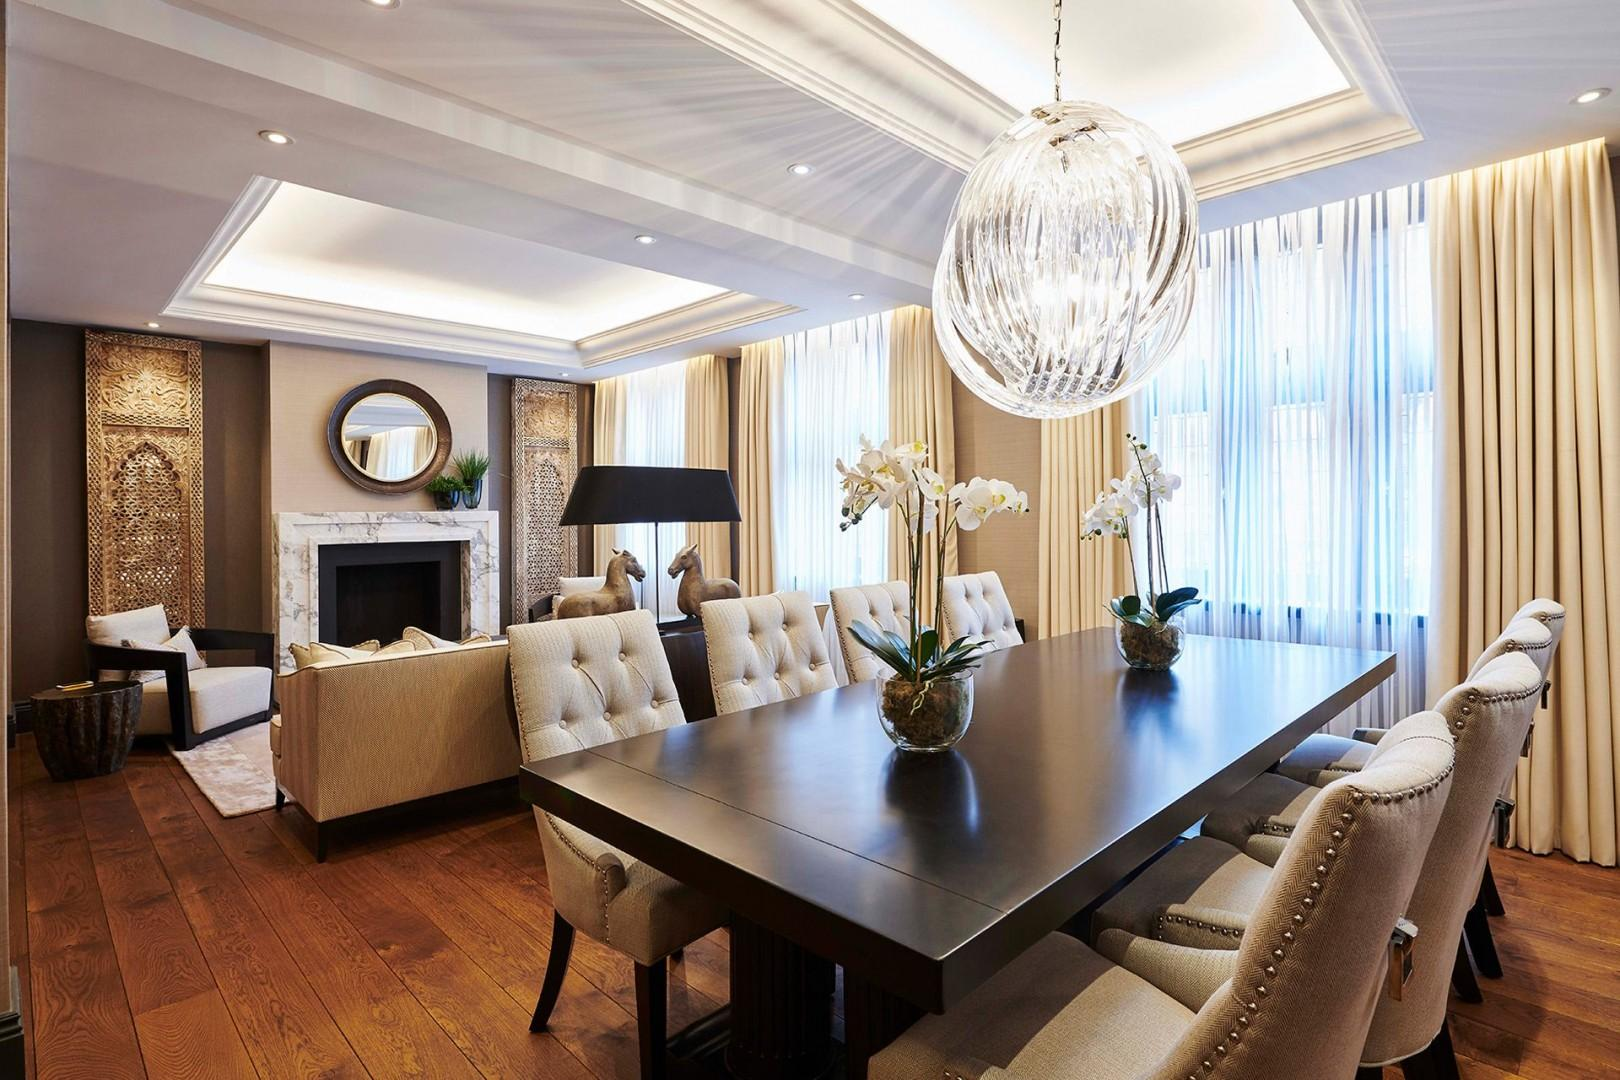 Spacious living area with ornate mantelpiece